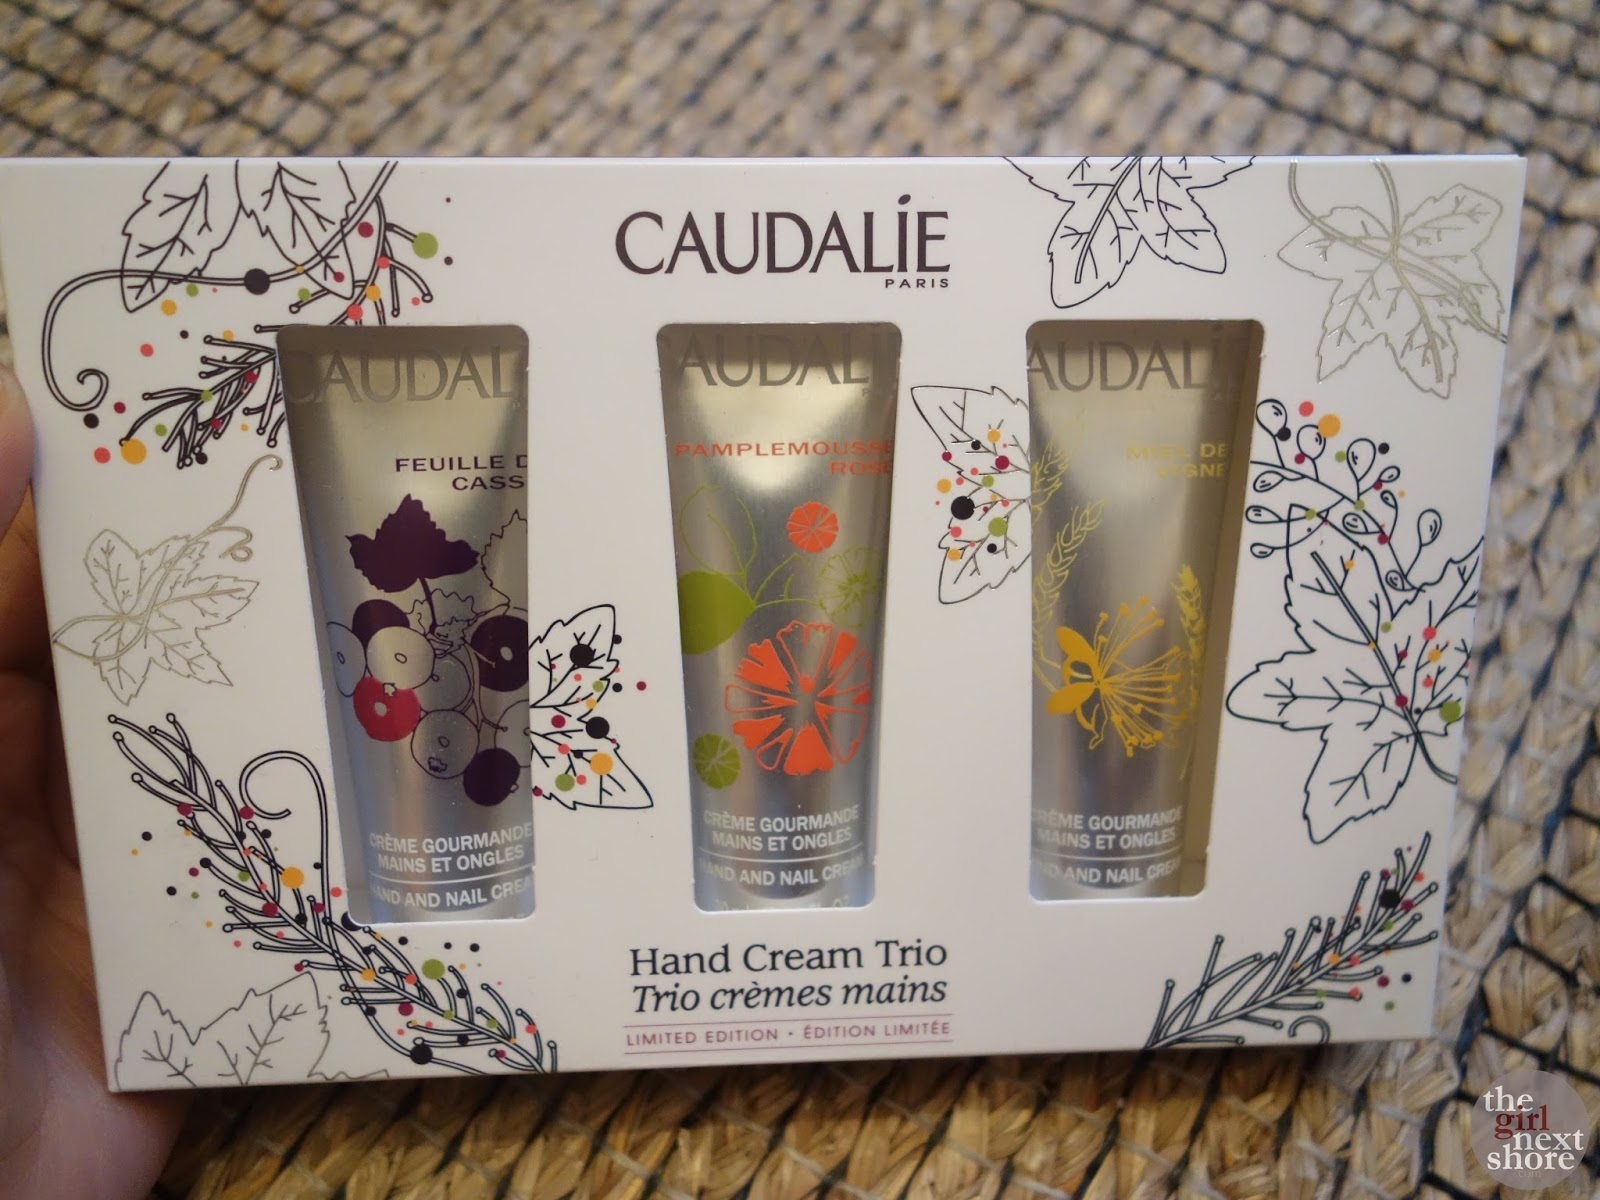 Holiday Gift Ideas: Stocking fillers under £20 from Caudalie, Kiehl's, Lipstick Queen